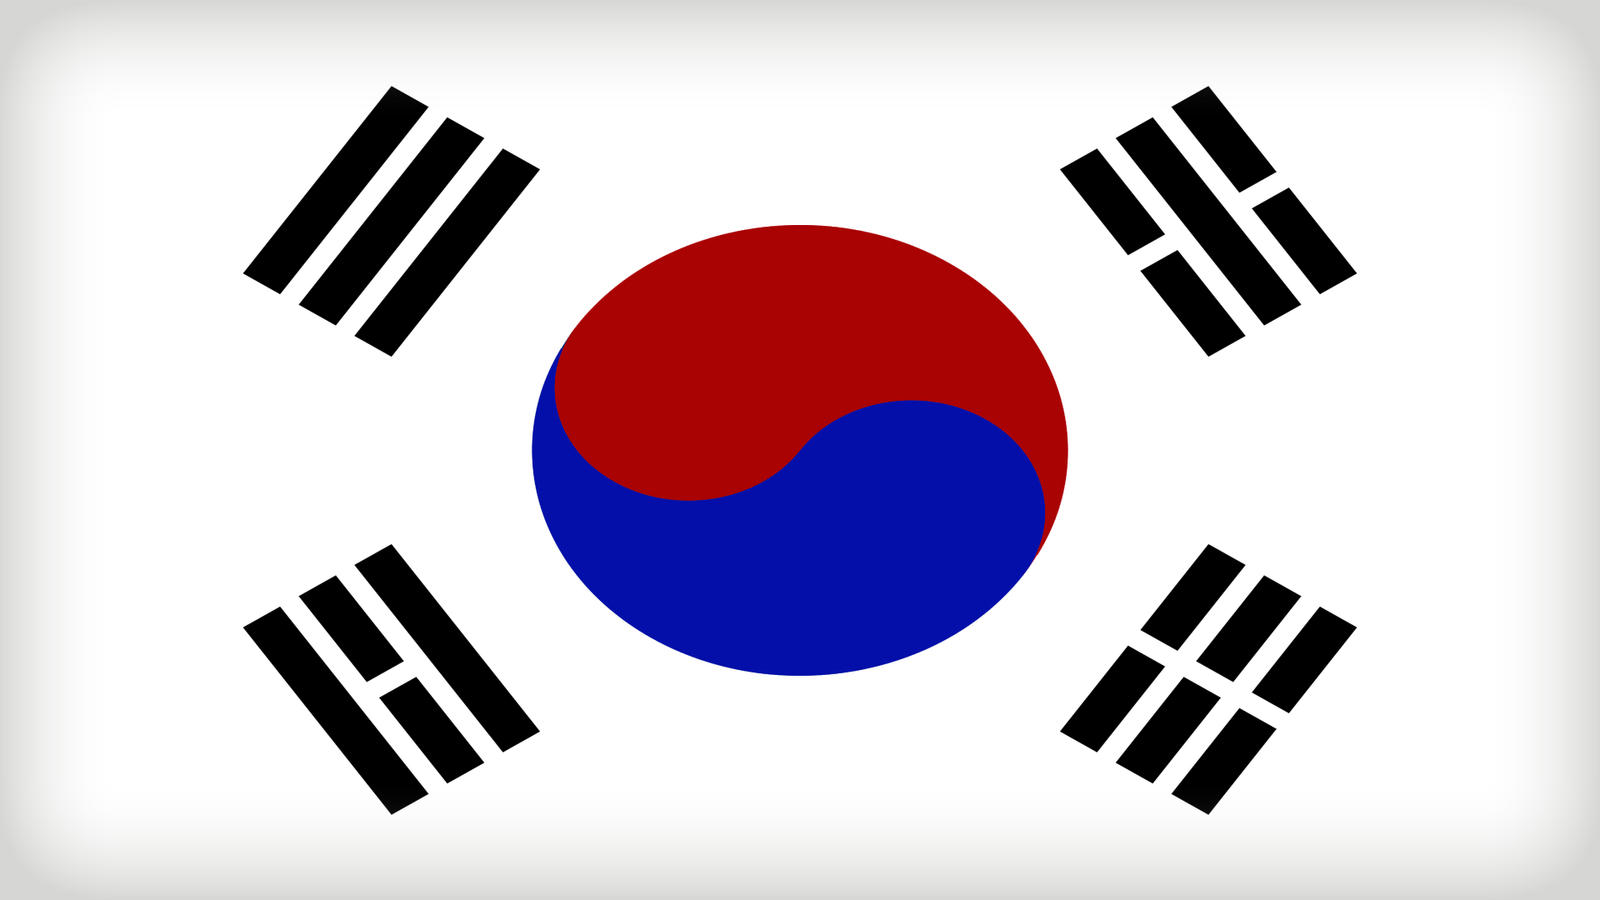 South Korea Flag by Xumarov